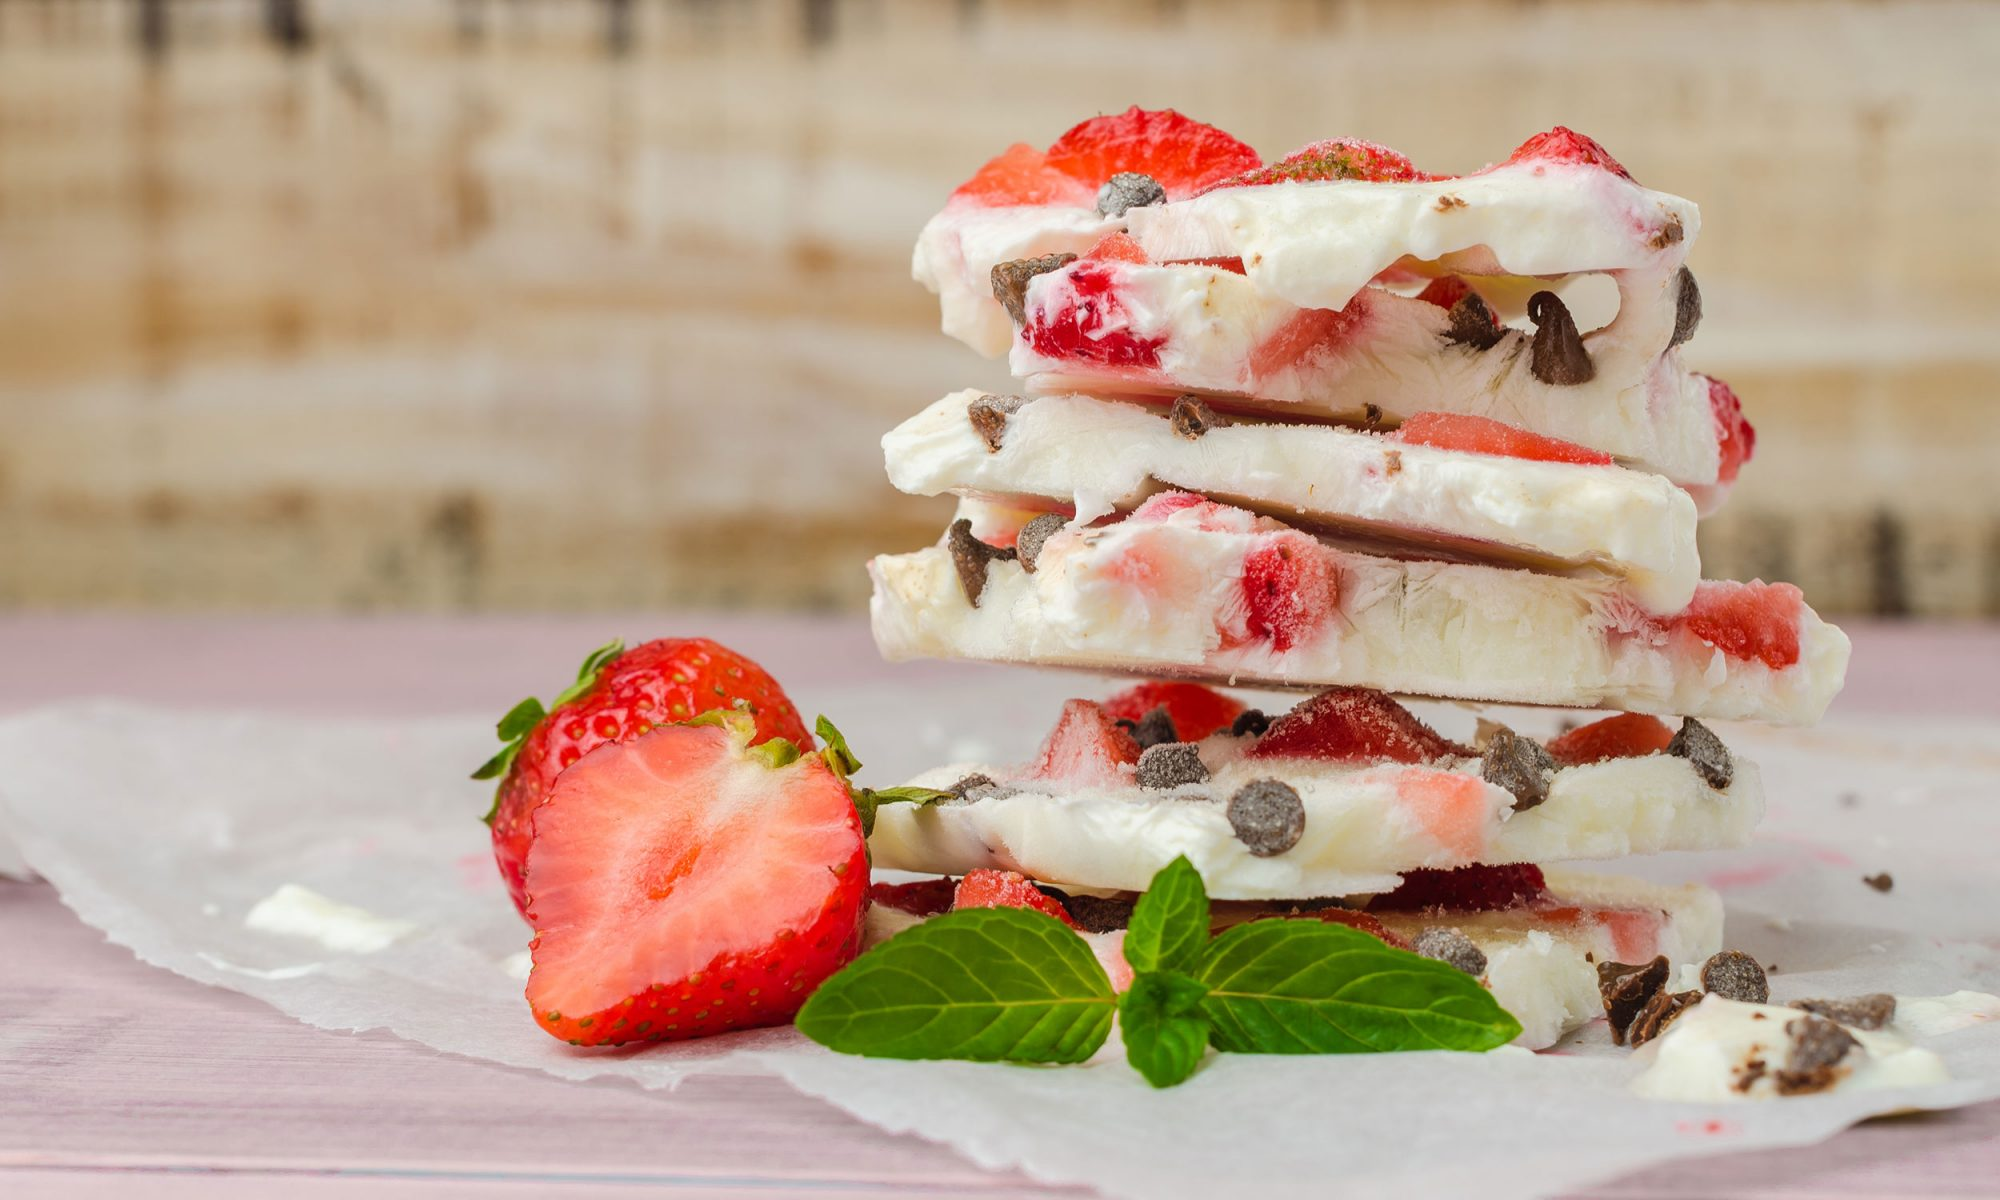 Make These 4-Ingredient Yogurt Bark Recipes in 15 Minutes or Less